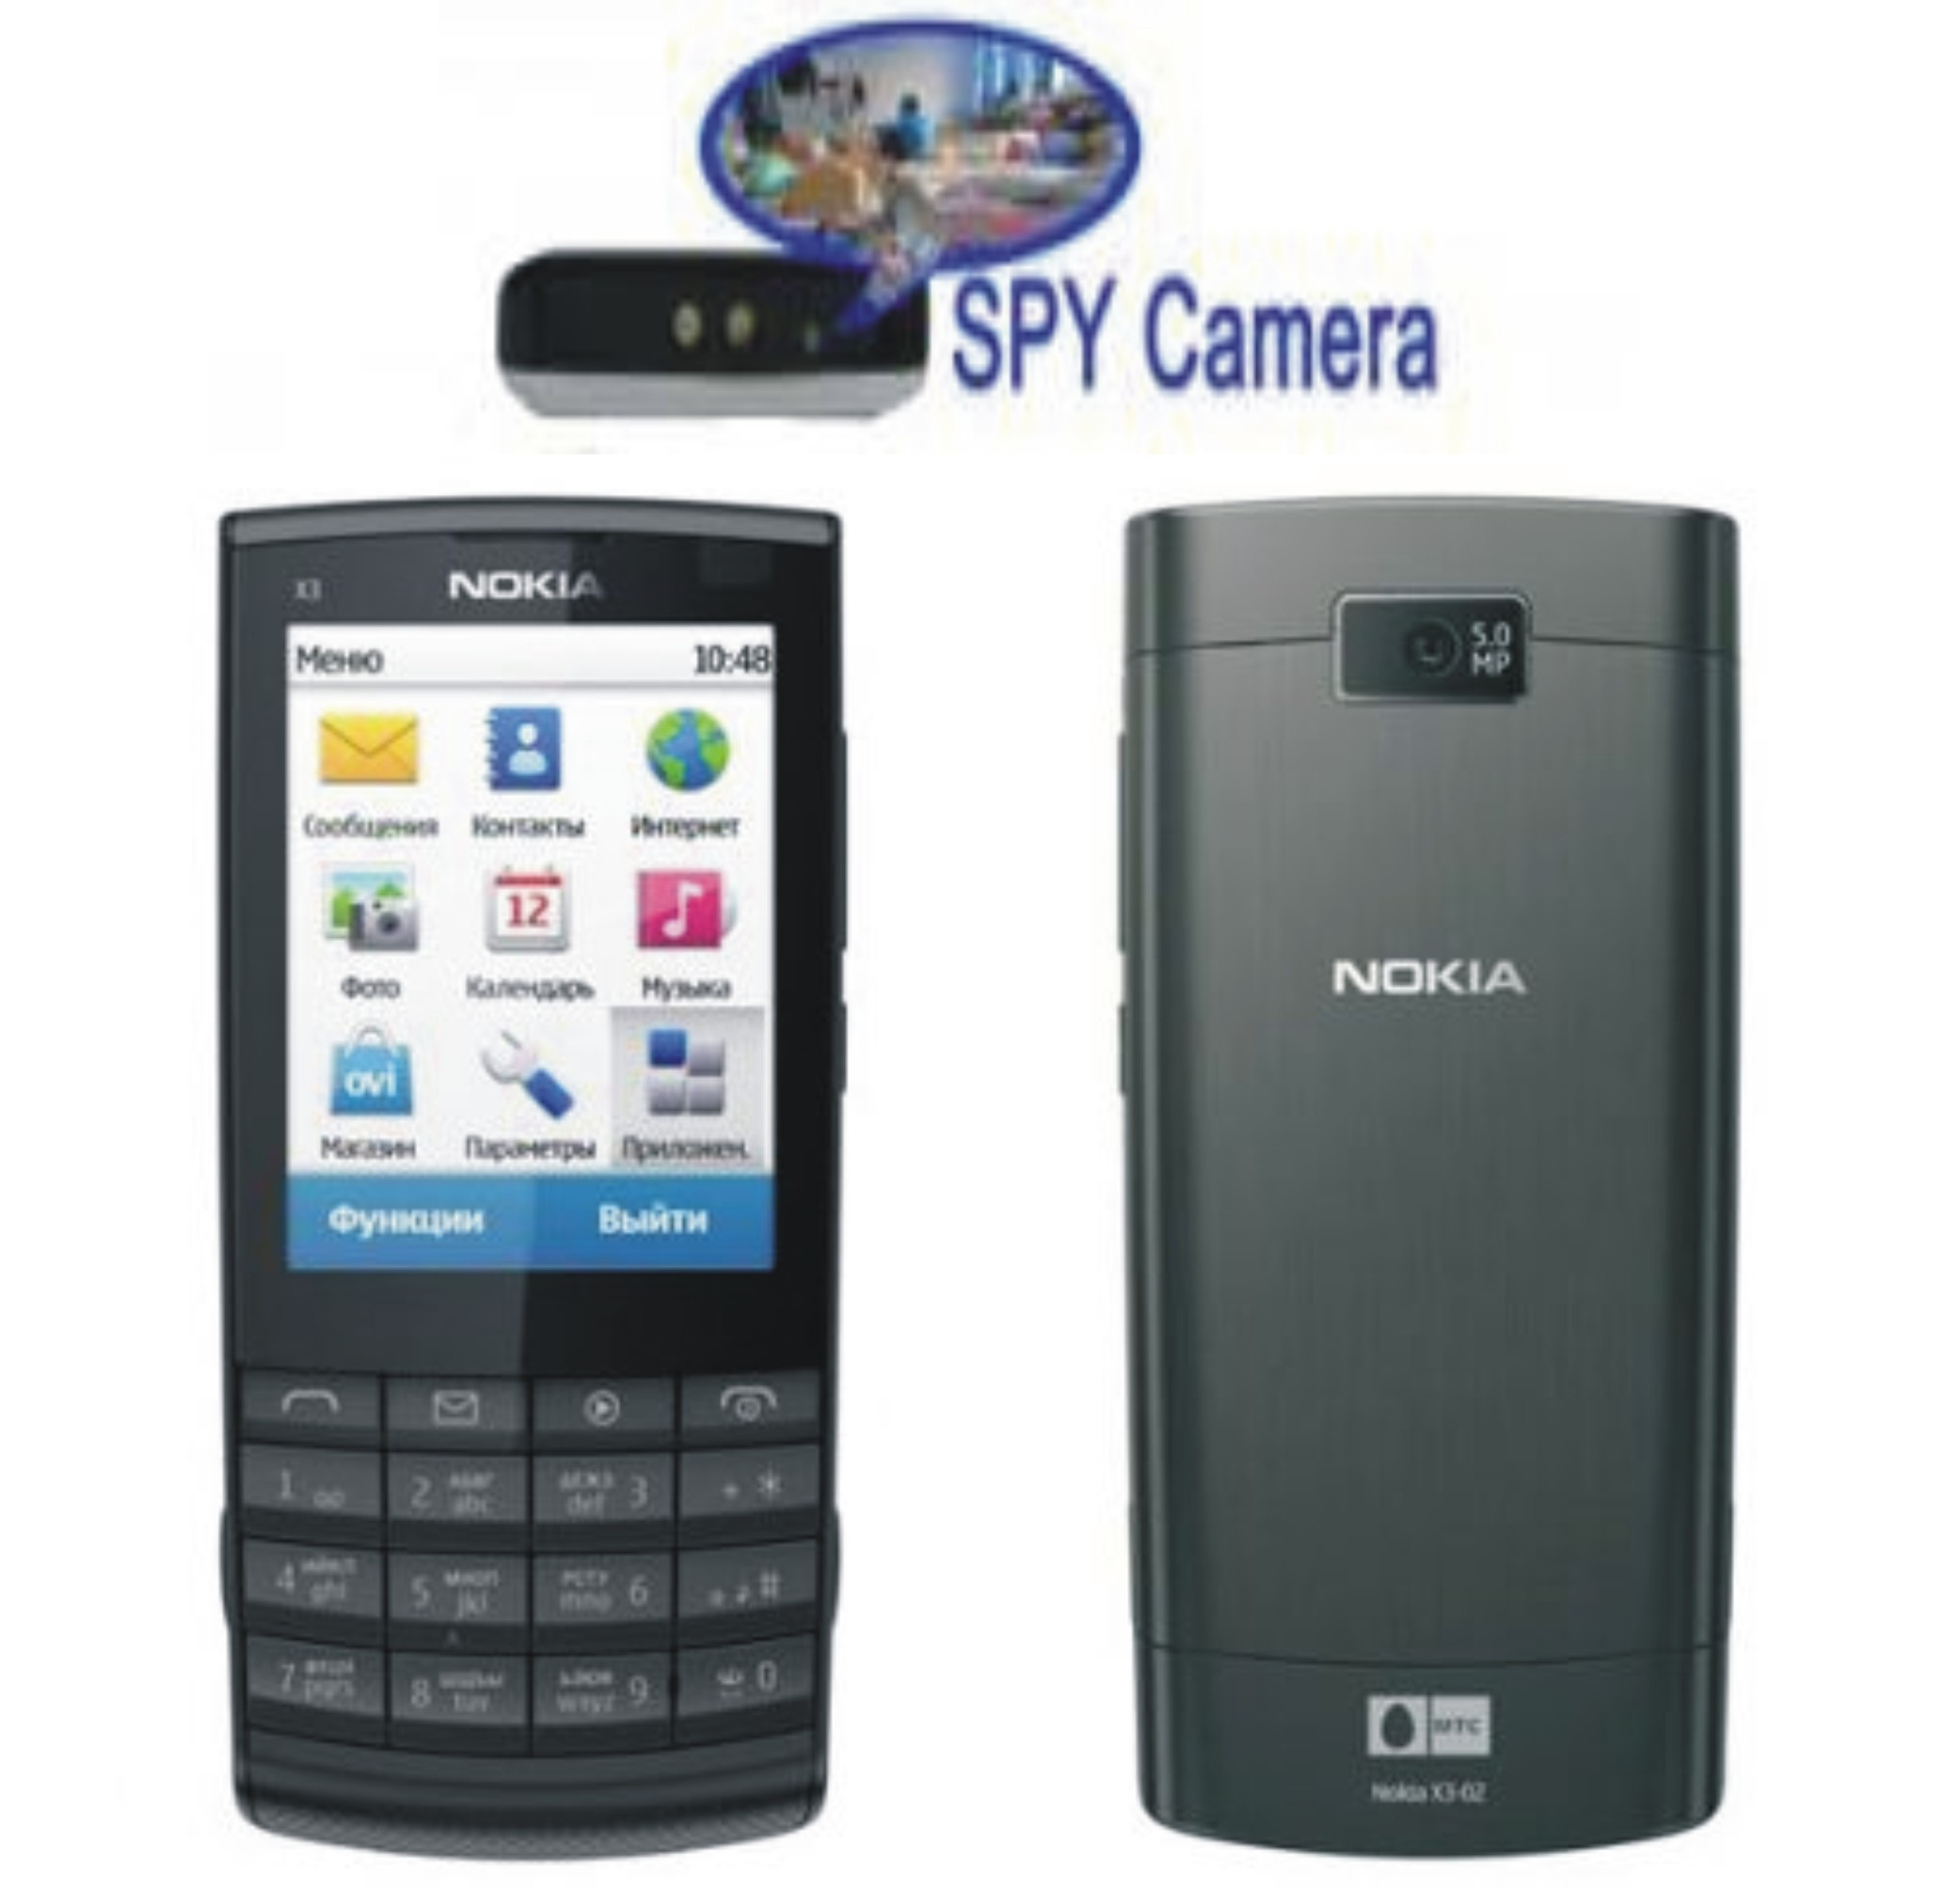 Spy Camera In Nokia Phone Touch Screen In Kota